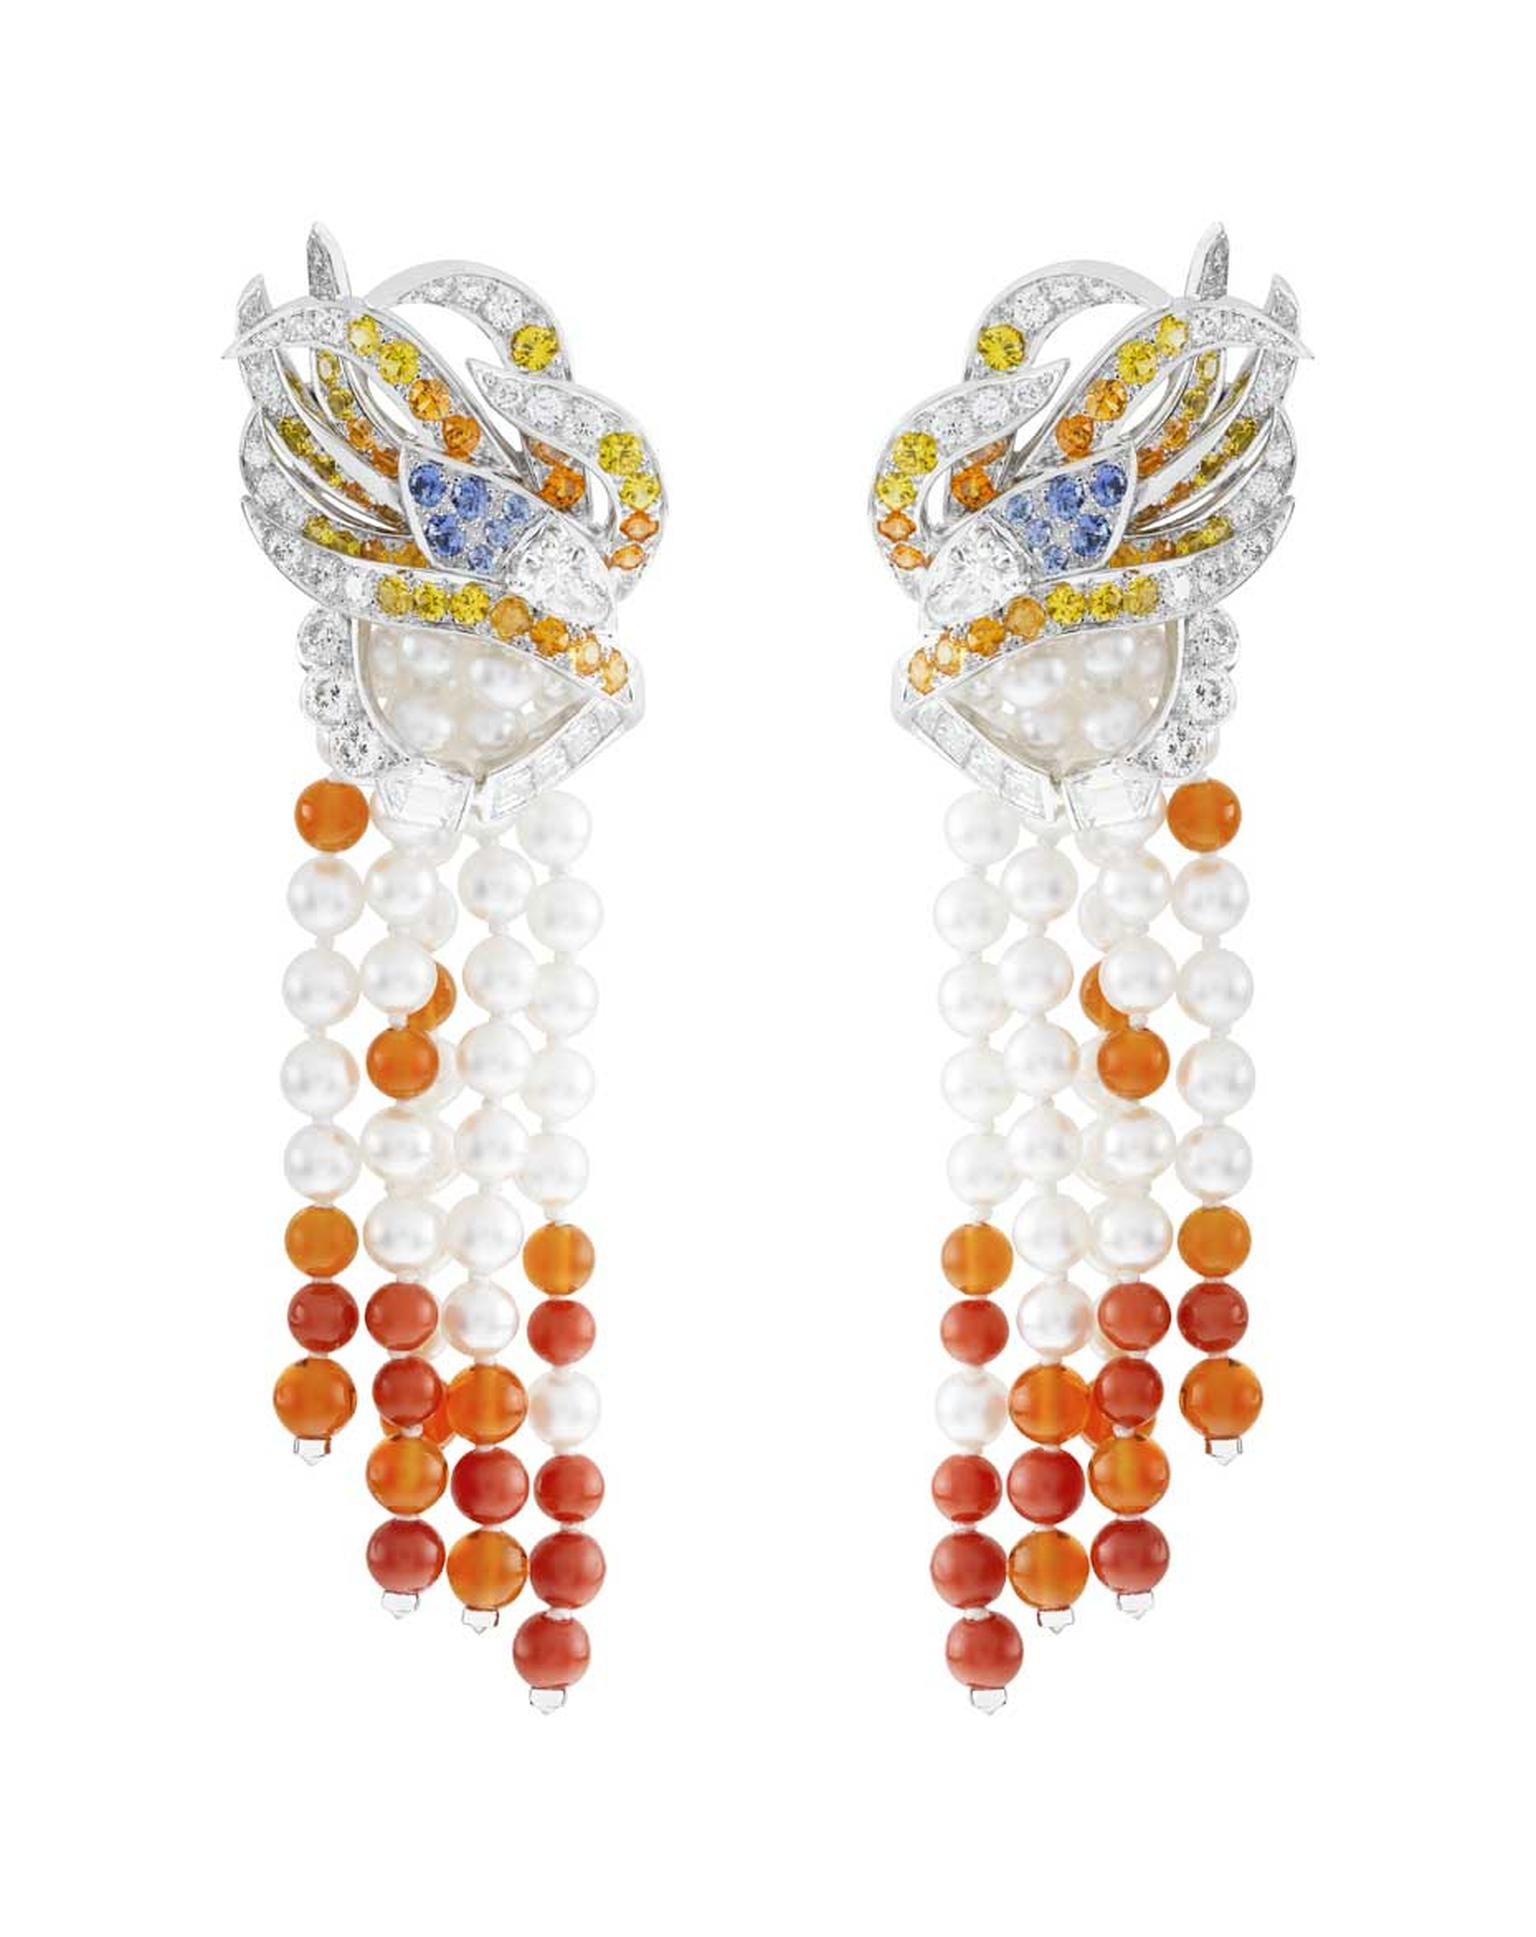 The stunning Oiseau de Feu earrings from the Palais de la Chance collection by Van Cleef & Arpels worn by Viola Davis, featuring diamonds, spessartite garnets, fire opal, red coral, white cultured pearls, blue and yellow sapphires set in white gold.